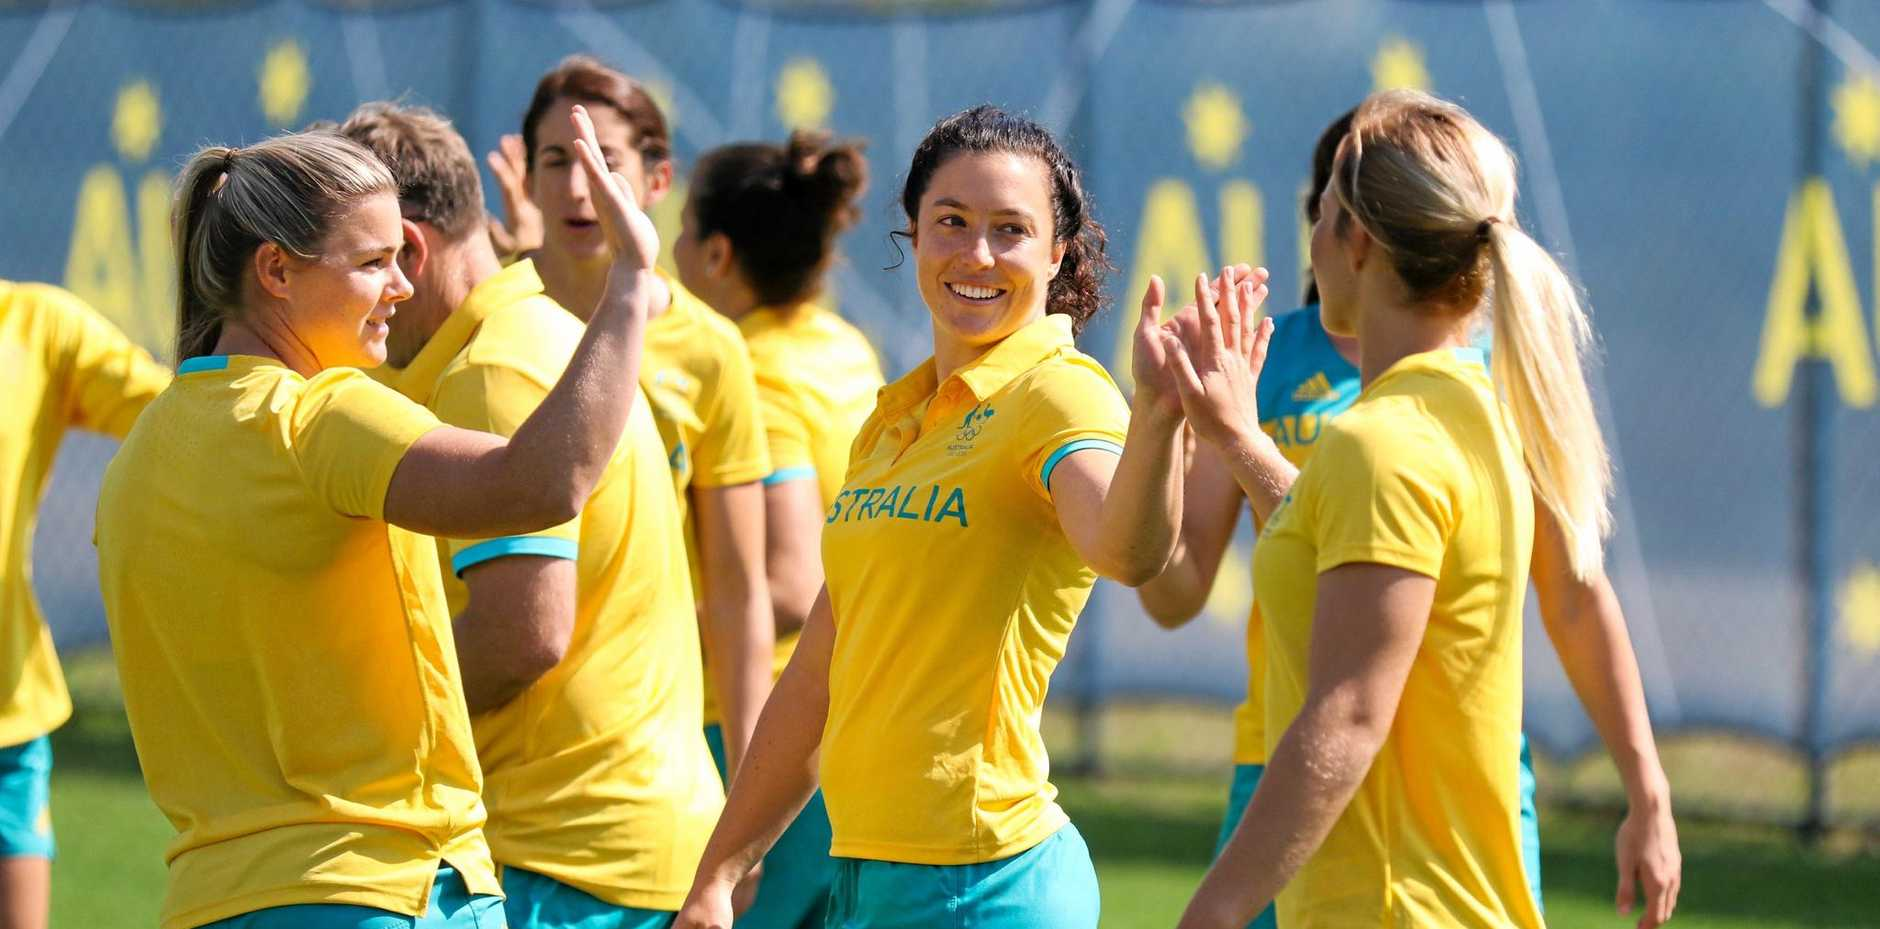 SHE'S BACK: Roma's Emilee Cherry with her Australian rugby sevens teammates at the Rio Olympic Games.